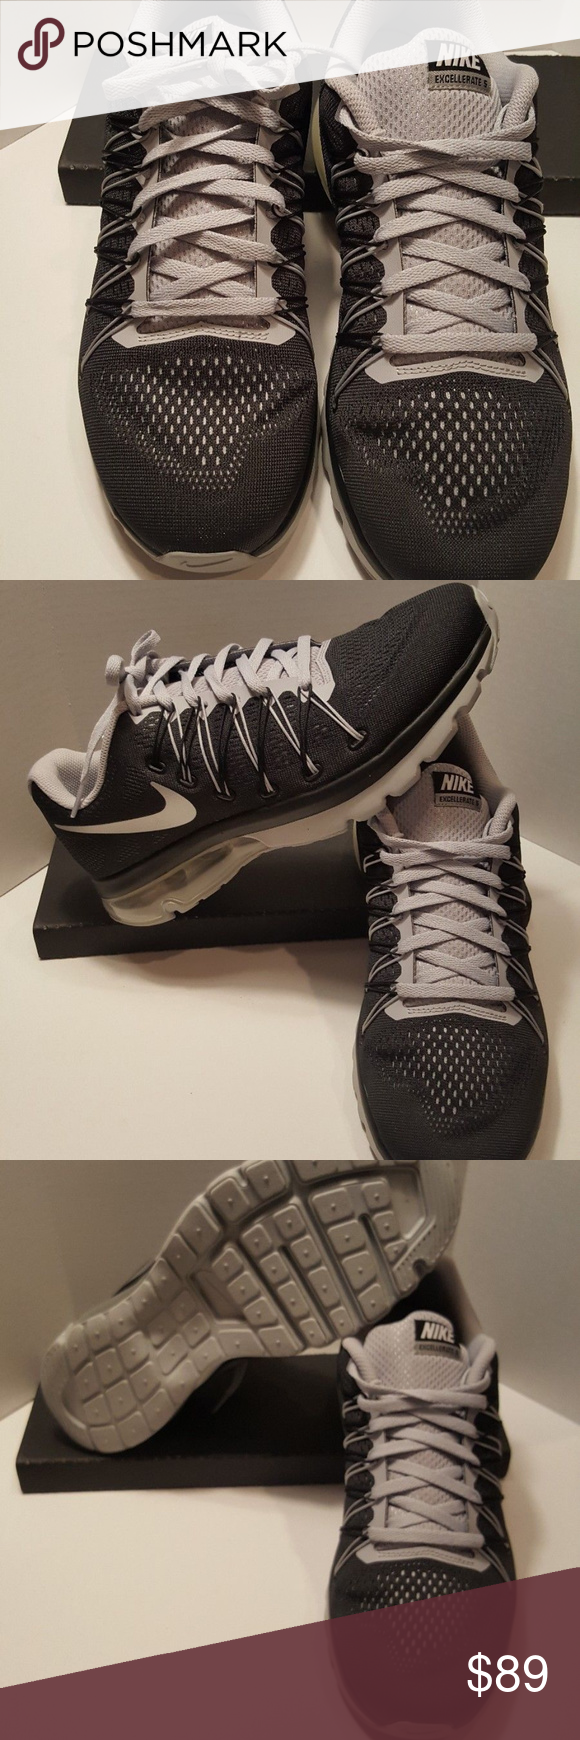 315dbbe34cbae Nike Air Max Excellerate Sz 8 852692 001 Brand new Nike air max excellerate  5. Very awesome looking shoe. Men s size 8 women s 10.